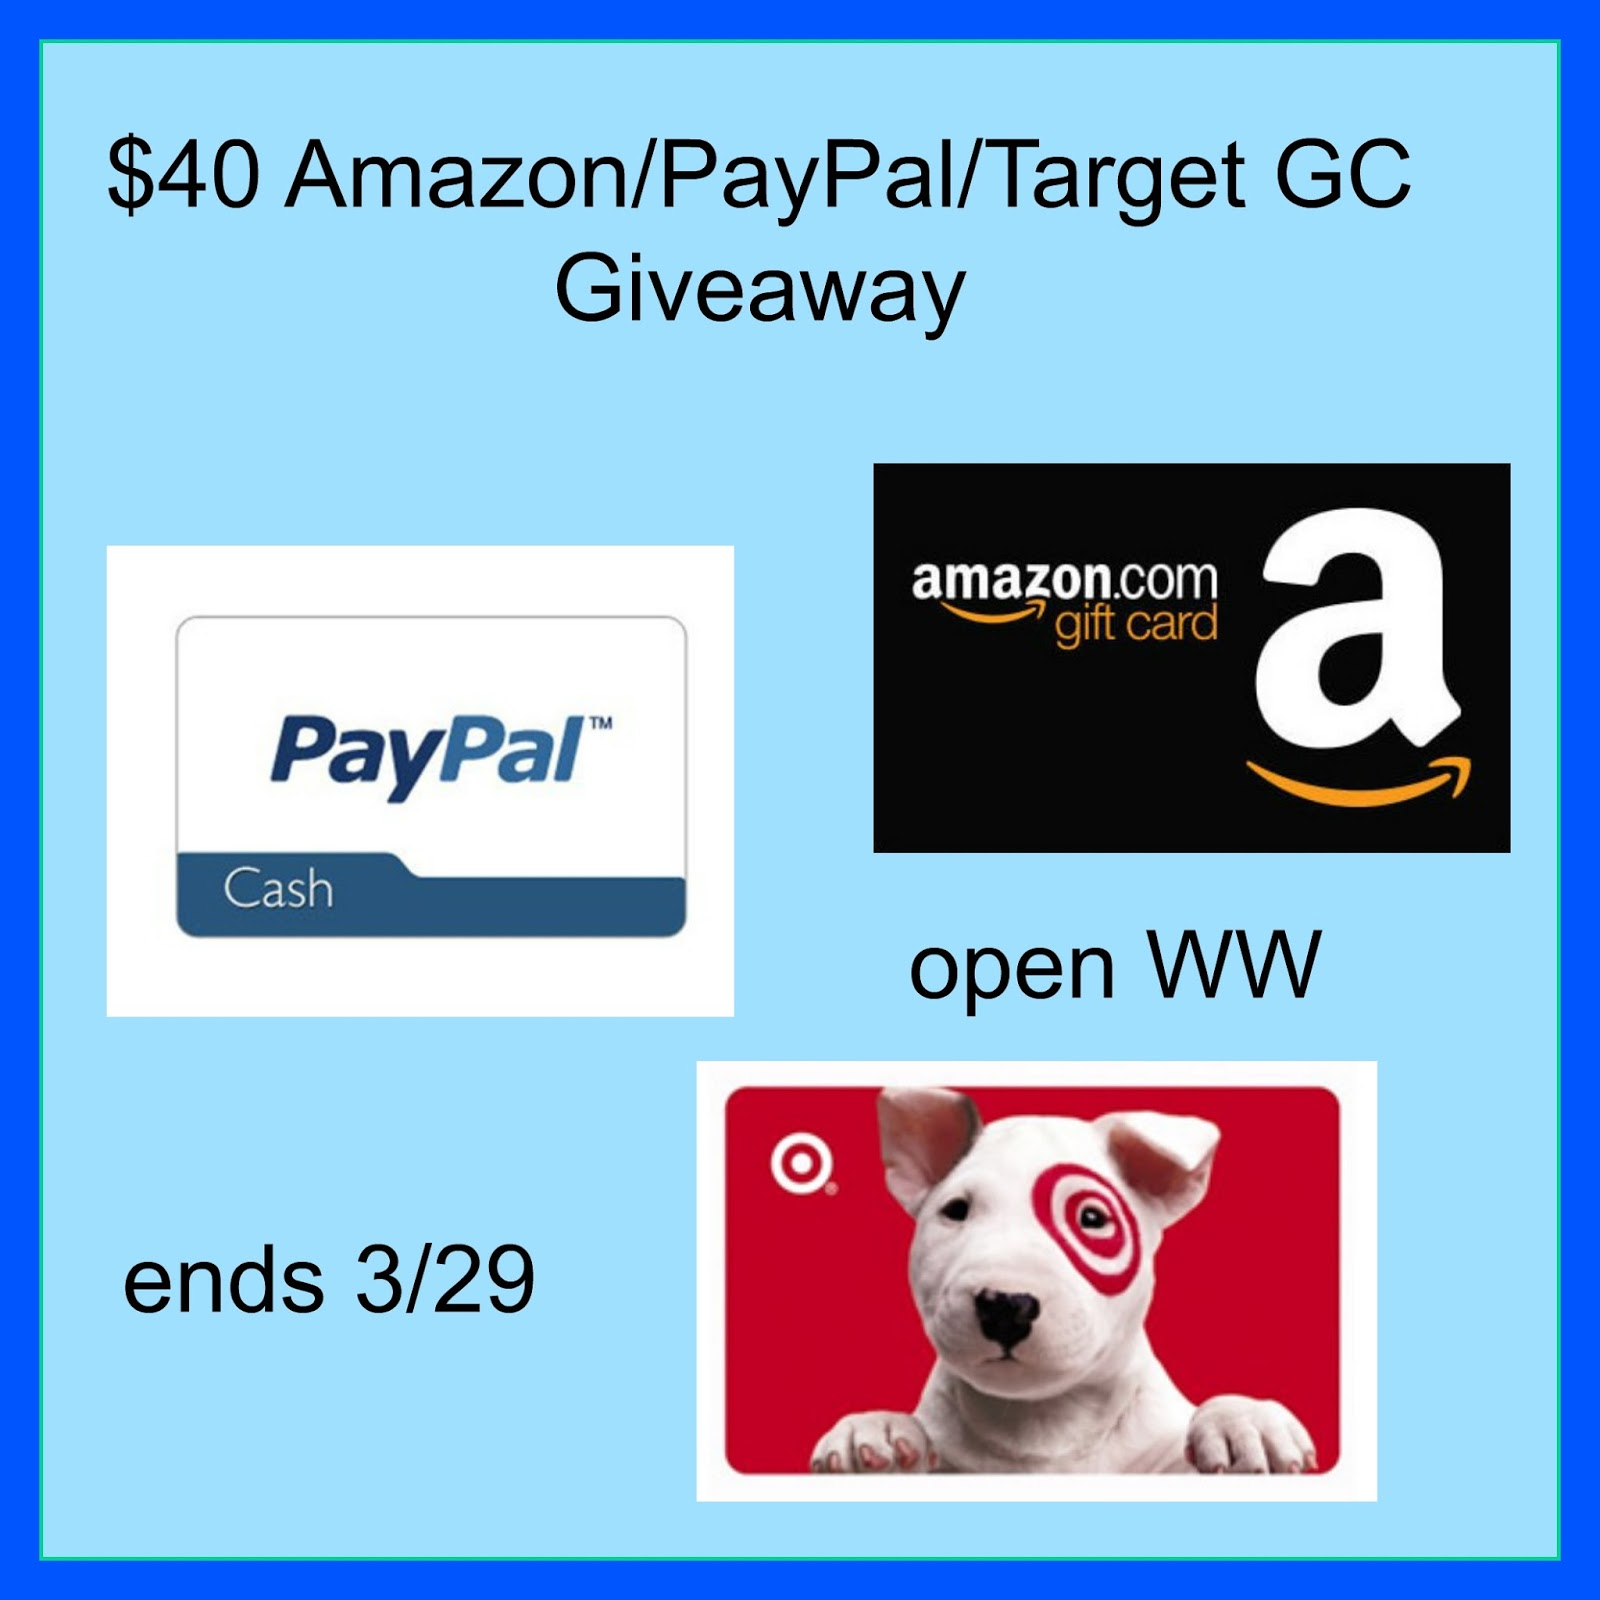 how to use paypal on amazon.co.uk